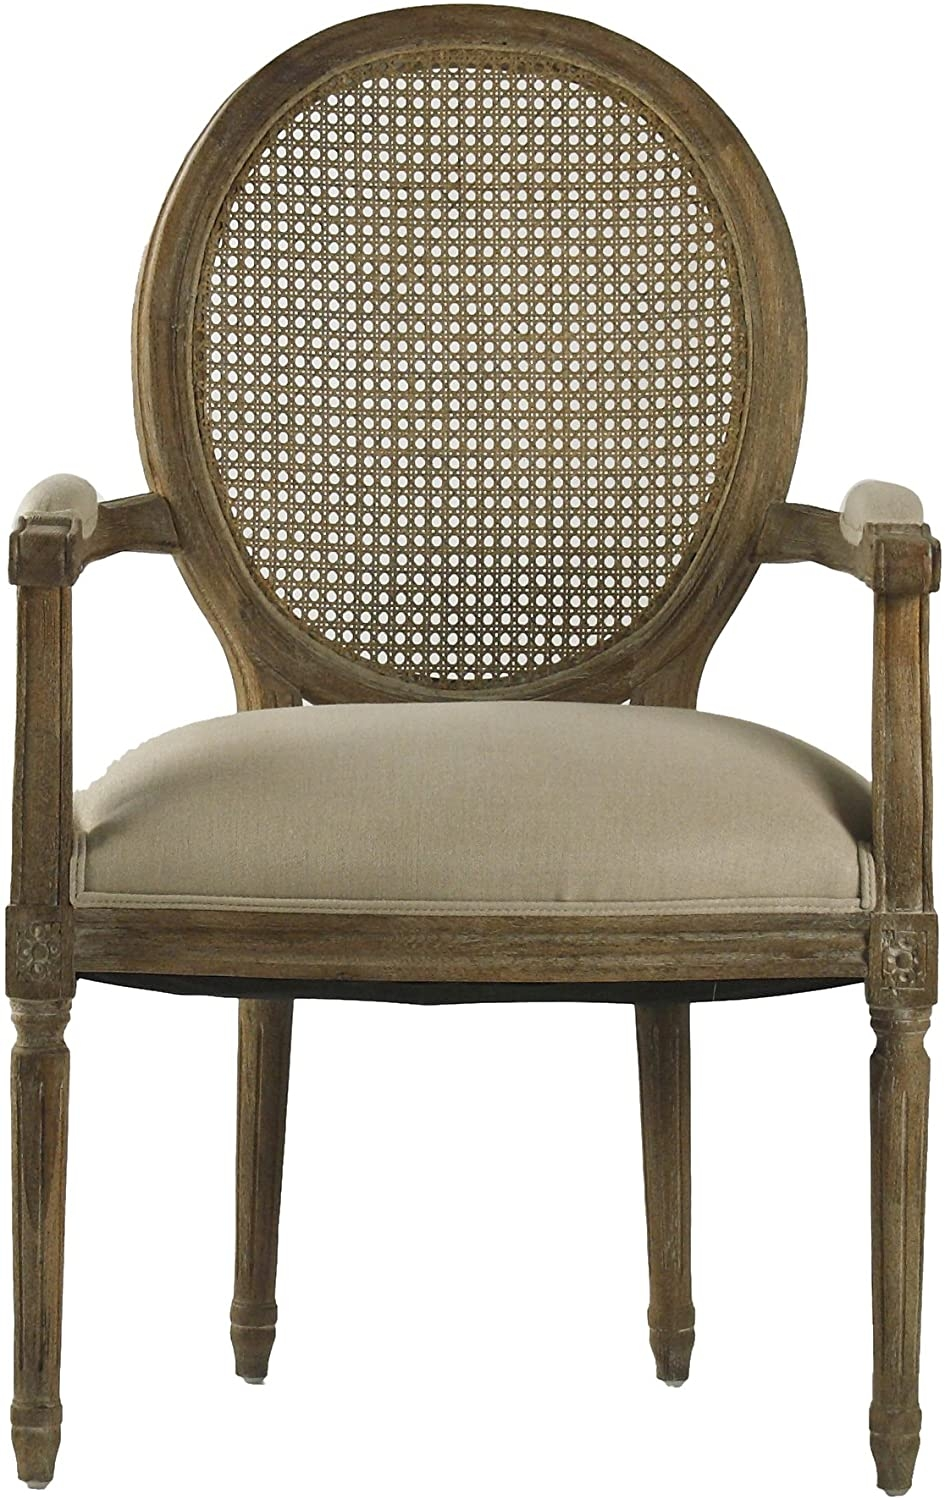 Zentique Medallion Arm Chair With Cane Back, Limed Grey/Oak/Natural Linen